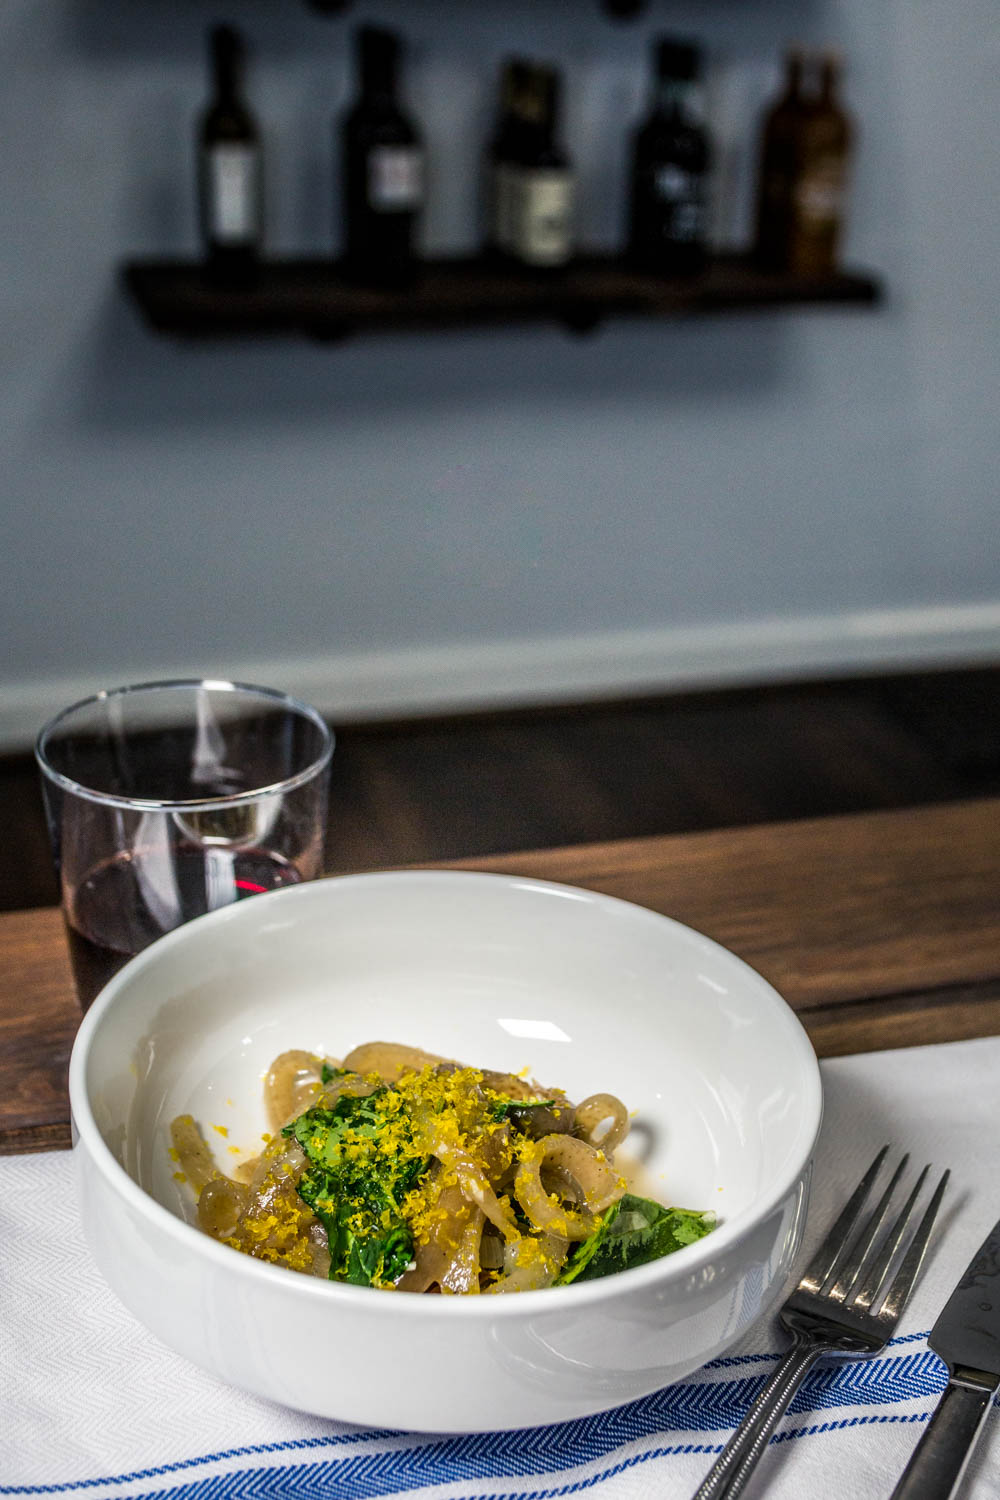 Pig Skin Carbonara: hand-sliced pig skin noodles tossed lightly in white wine and butter with arugula and topped with grated cured egg yolk / Image: Catherine Viox{ }// Published: 10.16.19